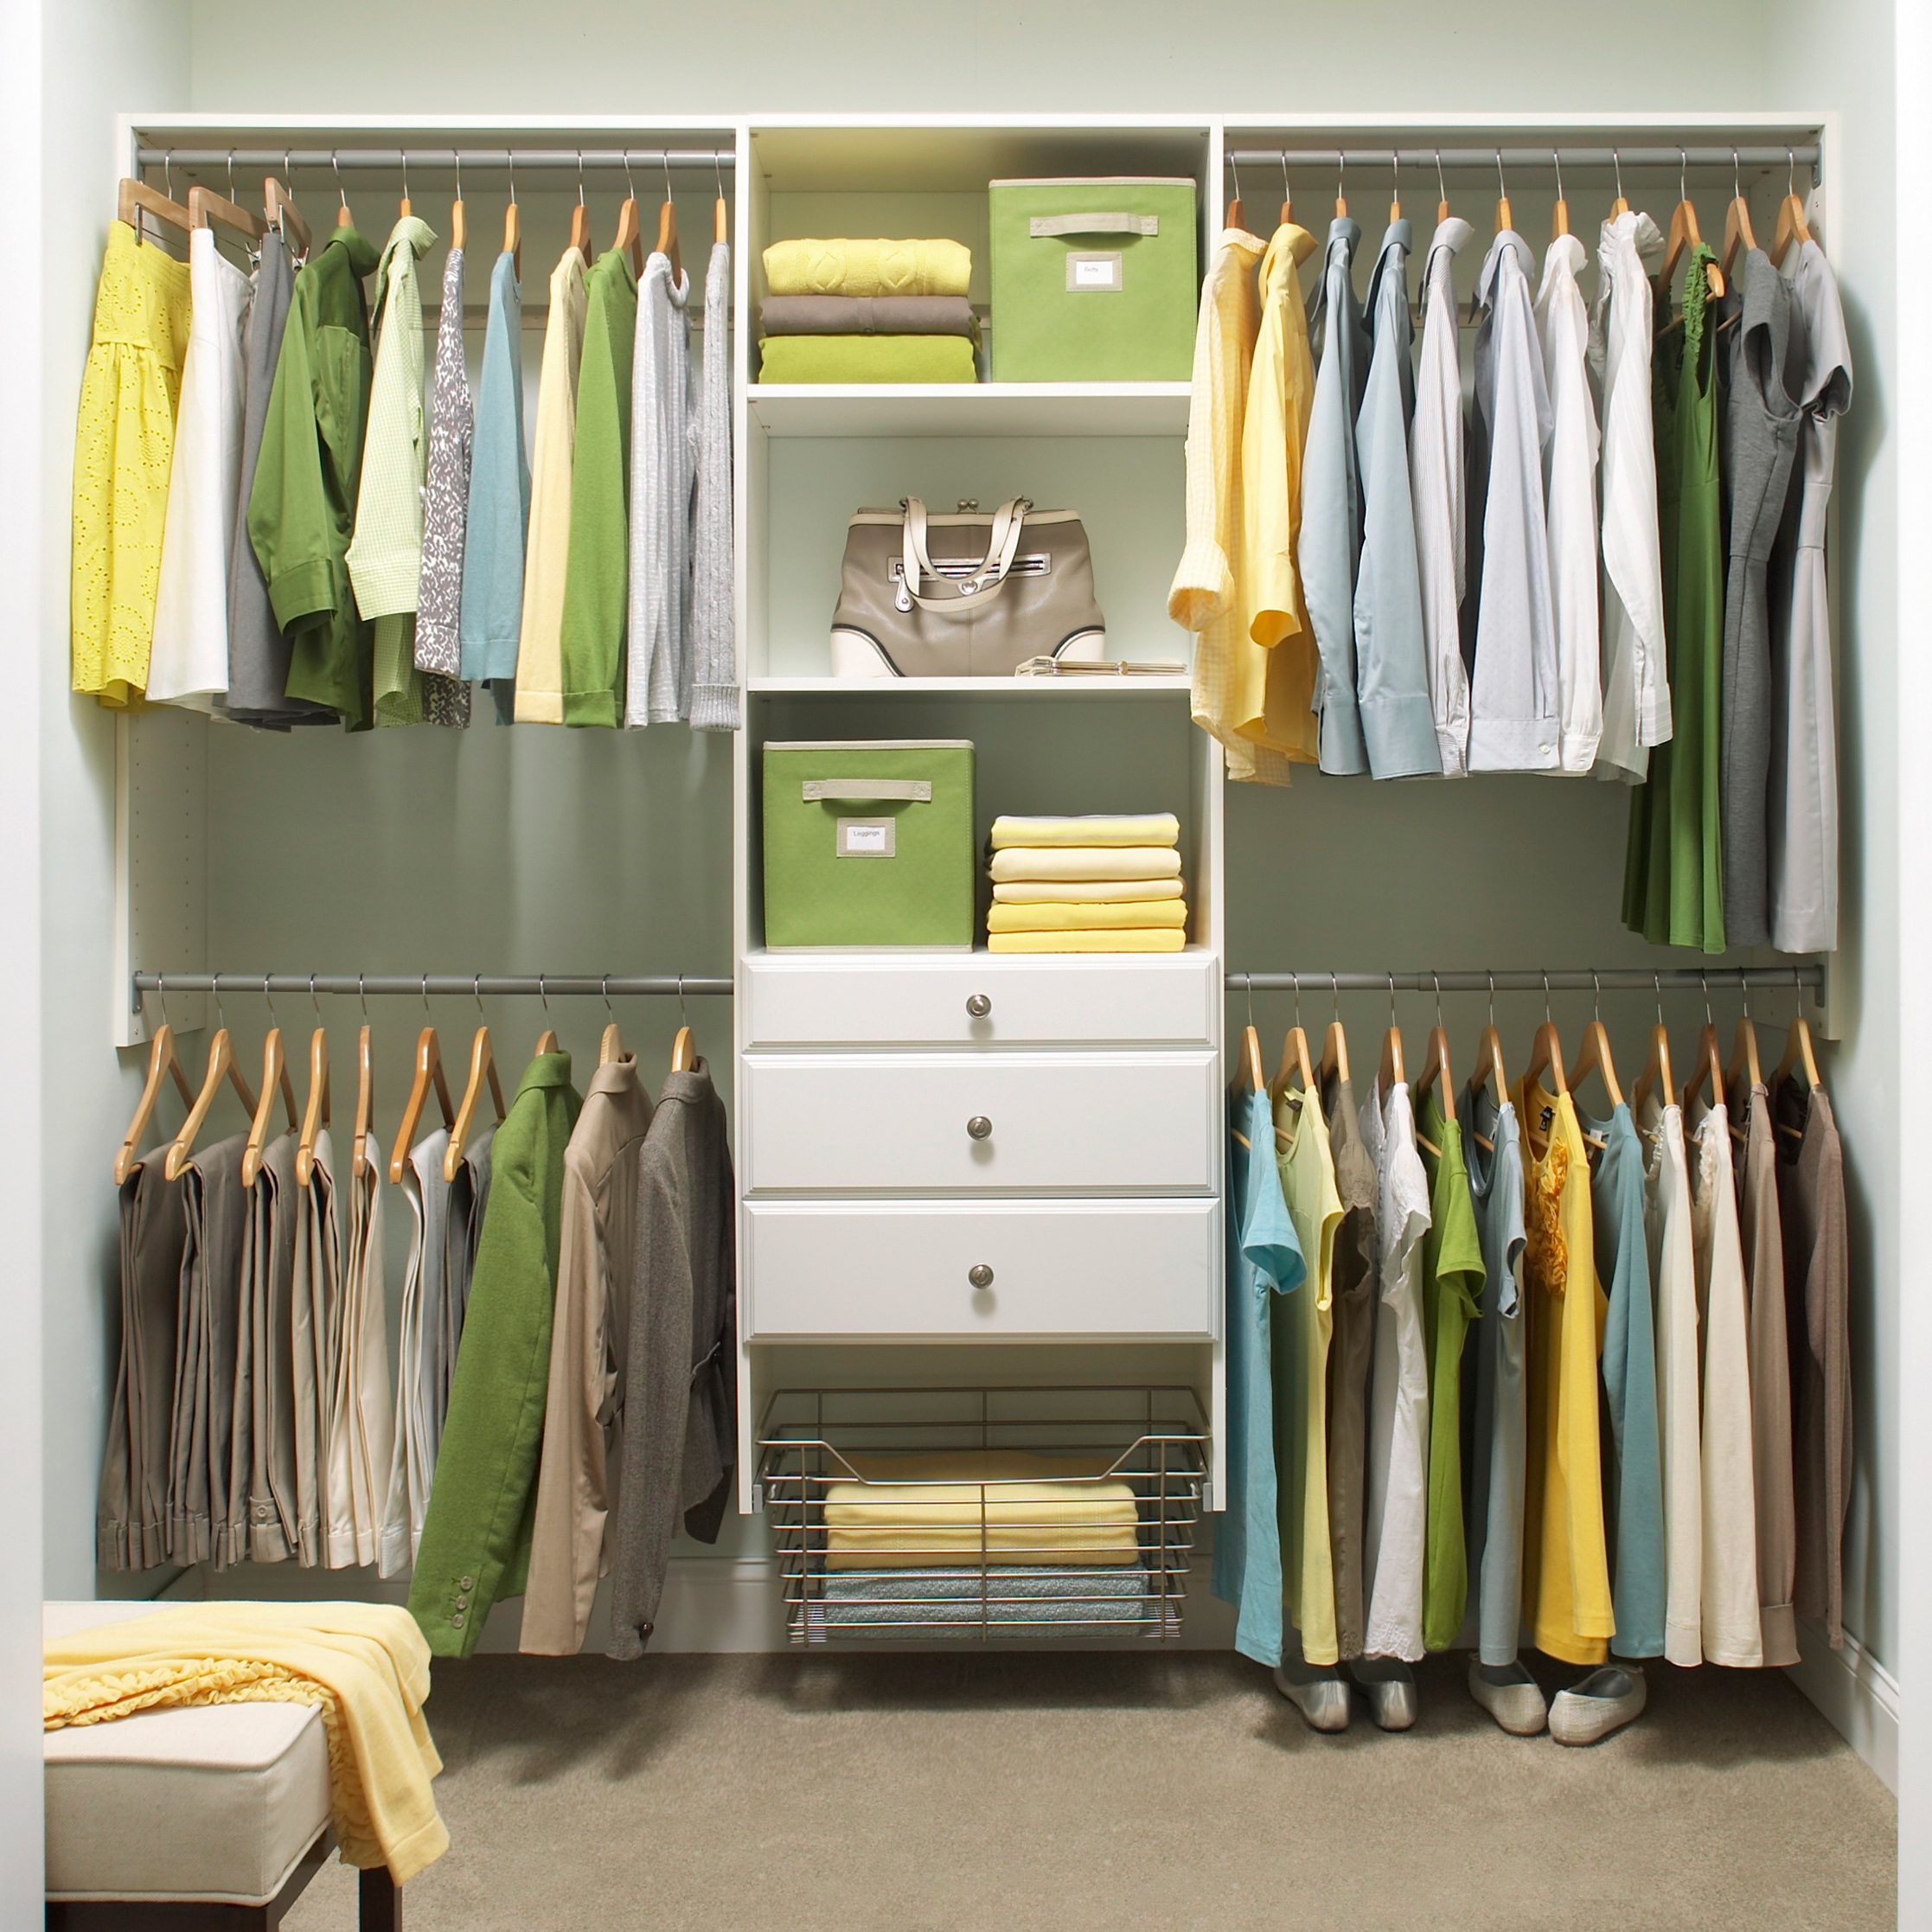 Closet Organization Made Simple By Martha Stewart Living At The Home Depot  Closet System